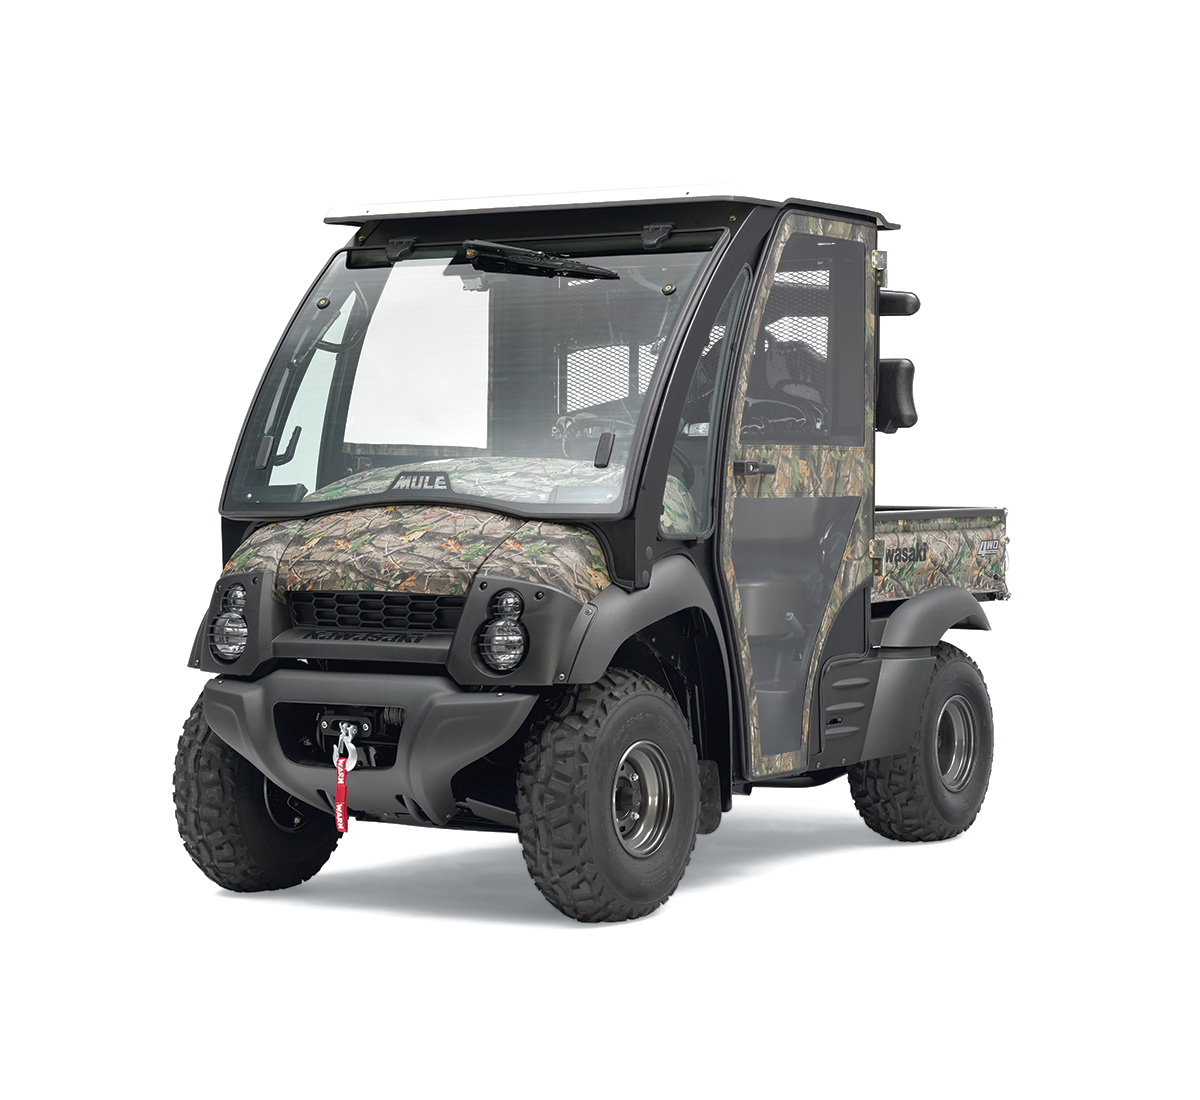 440 Kawasaki Engine Diagram furthermore TPS 20wire 20connection additionally KAF600012B moreover 30jdl Mule 3010 When Turn Ignition Key Nothing moreover Watch. on 2010 kawasaki mule 600